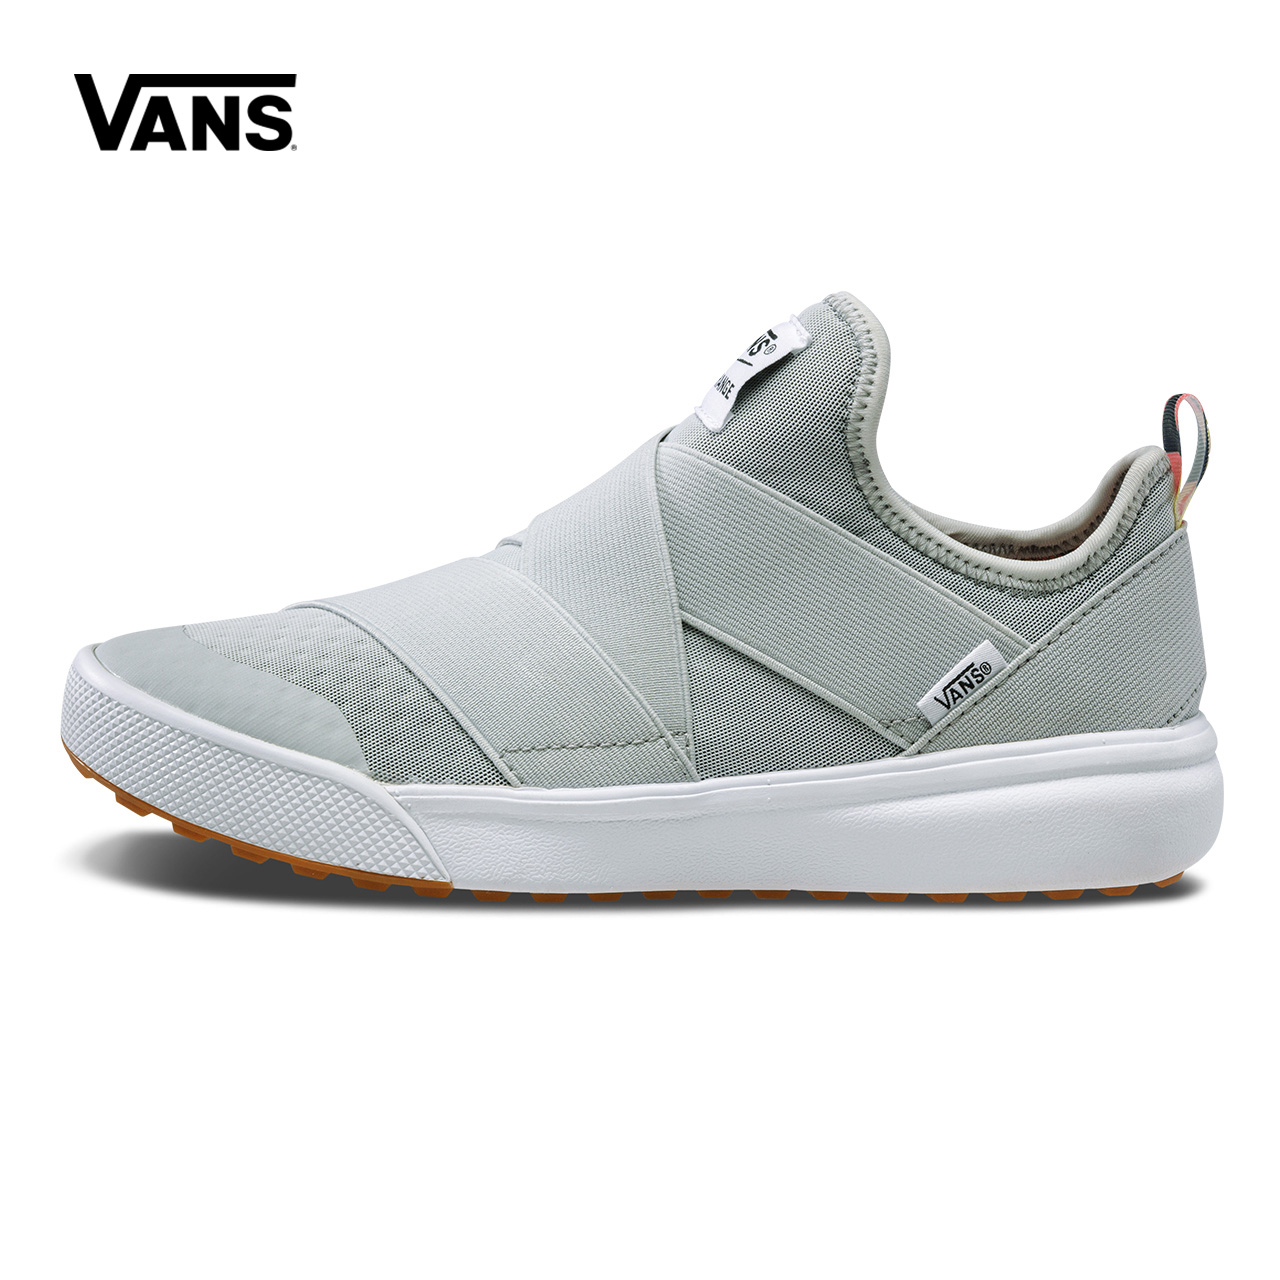 1cfe3b8bcdbb47 Original New Arrival Vans Women s Ultrarange Gore SF Skateboarding Shoes  Sport Outdoor Sneakers Canvas Comfortable VN0A3MVRR4Z